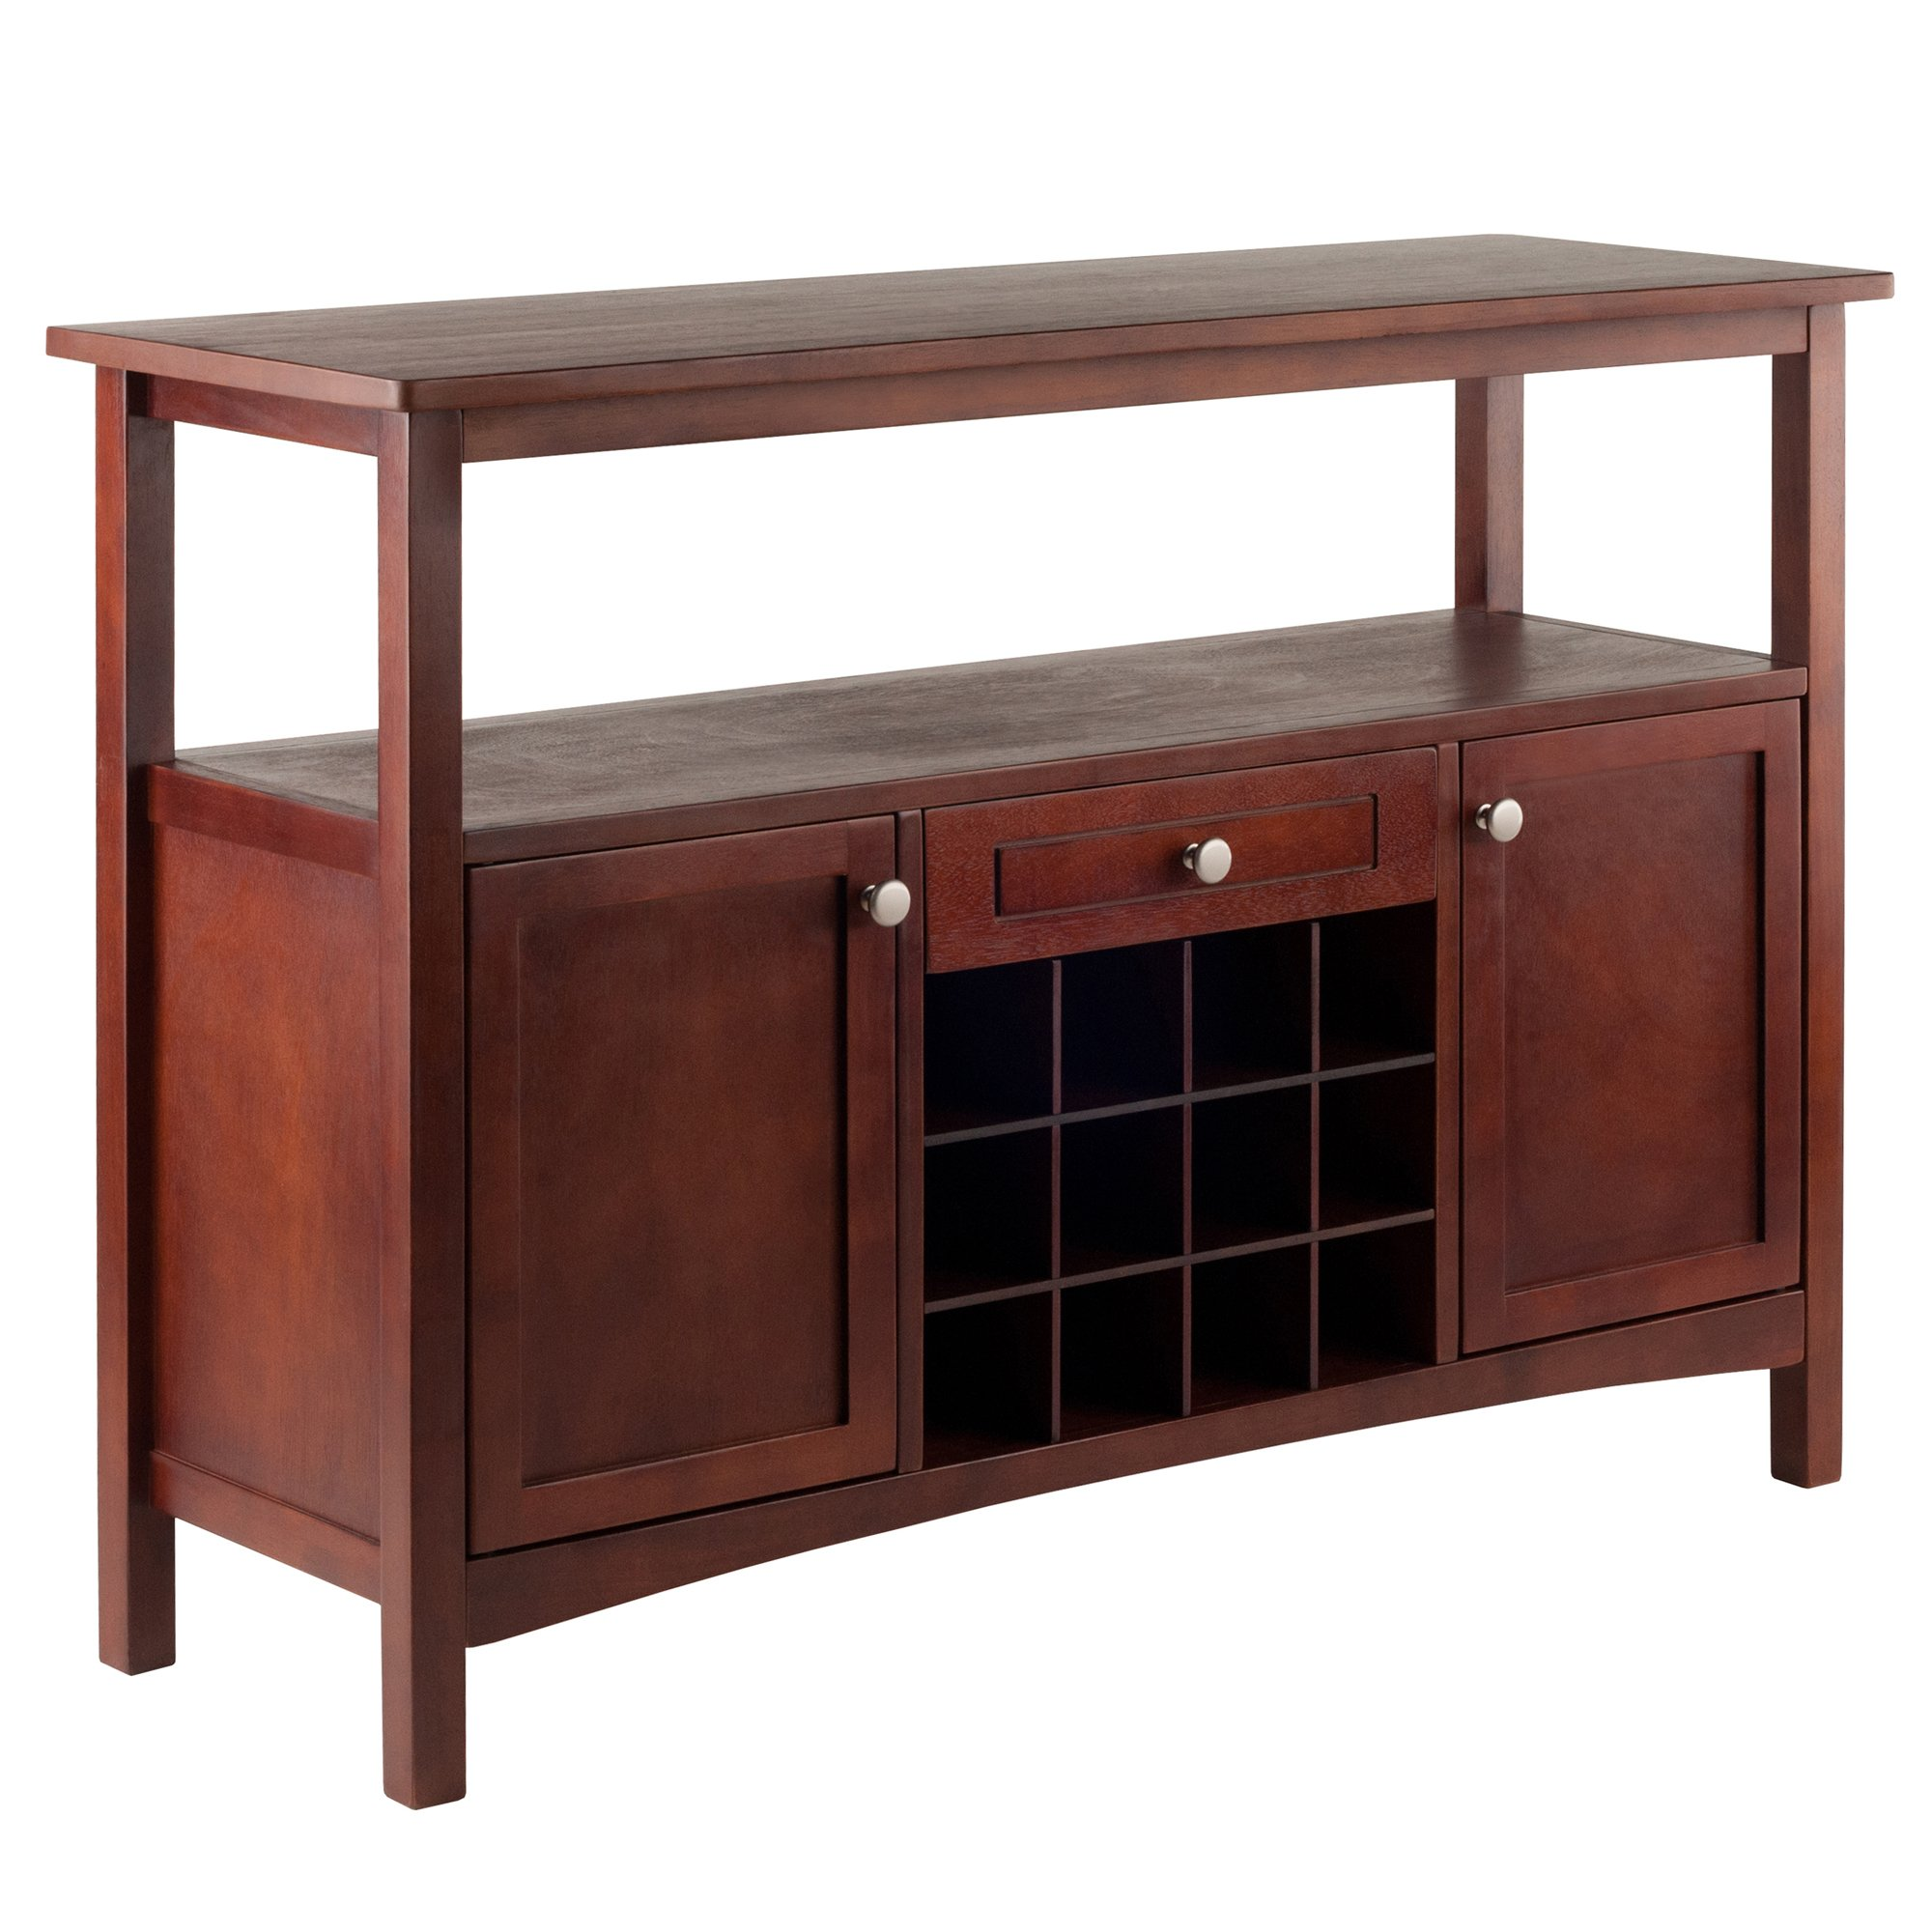 Winsome Wood 94745 Colby Buffet Cabinet, Walnut, 45.51x15.75x32.05